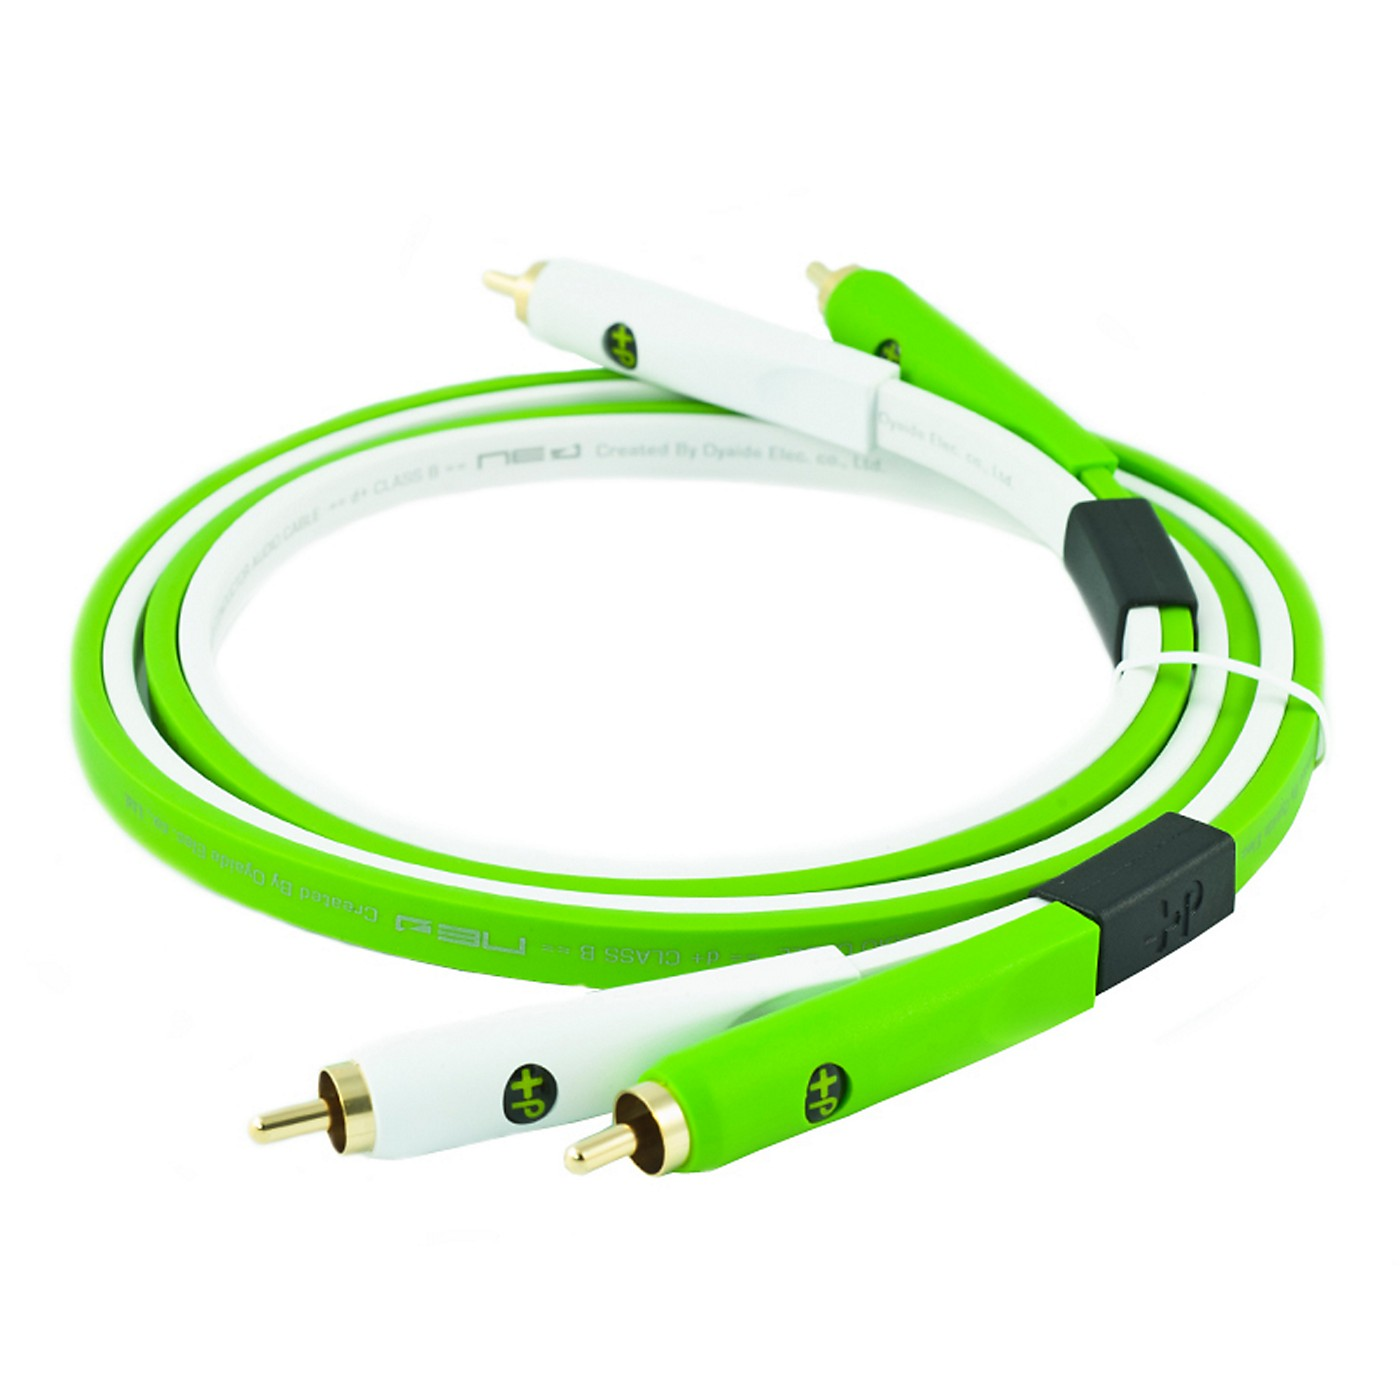 Oyaide Neo d+ Series Class B RCA Cable thumbnail